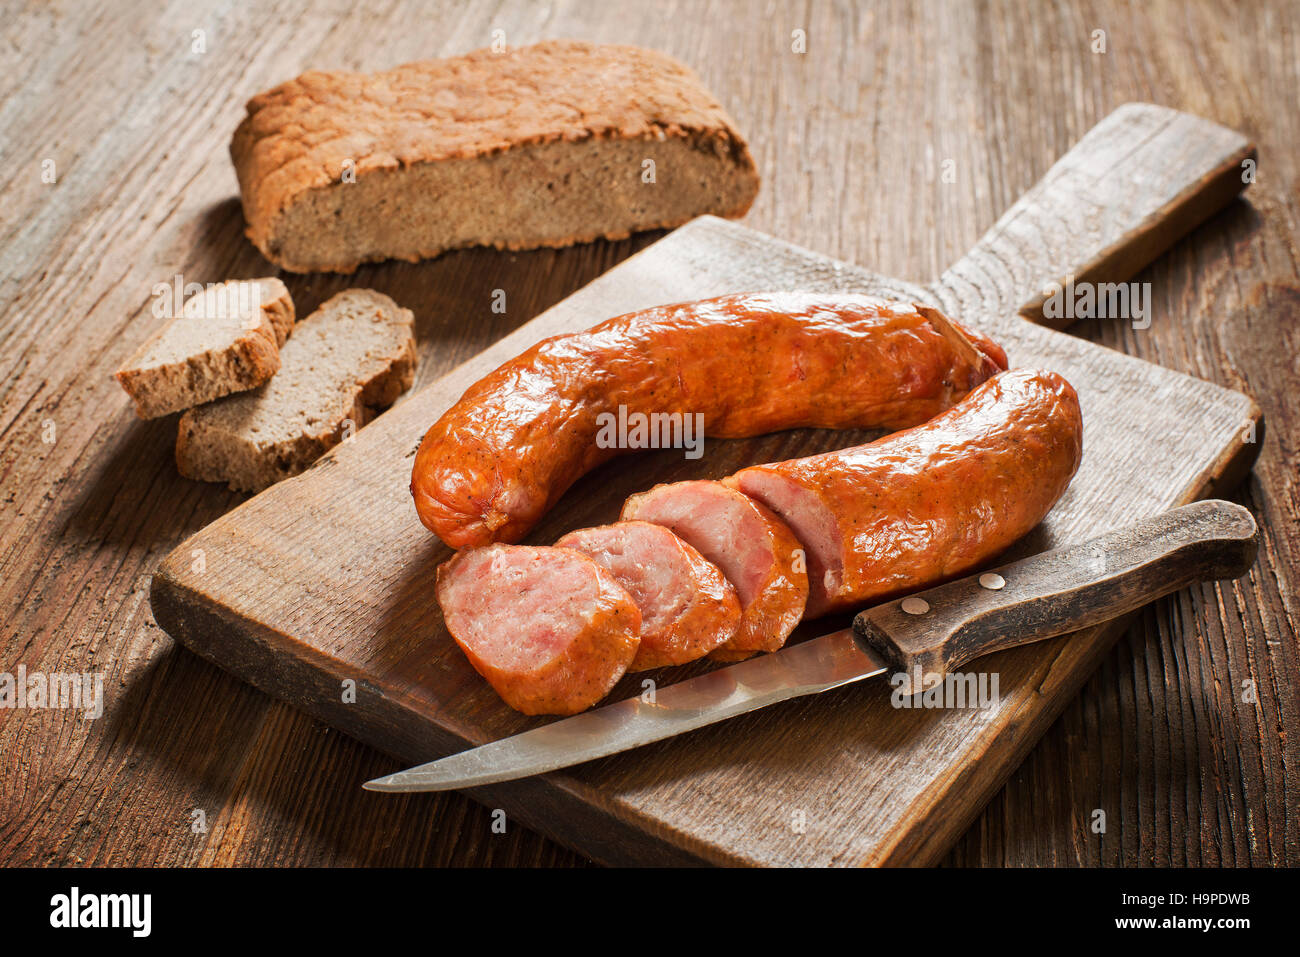 the sliced tasty sausage with bread on the wooden table - Stock Image